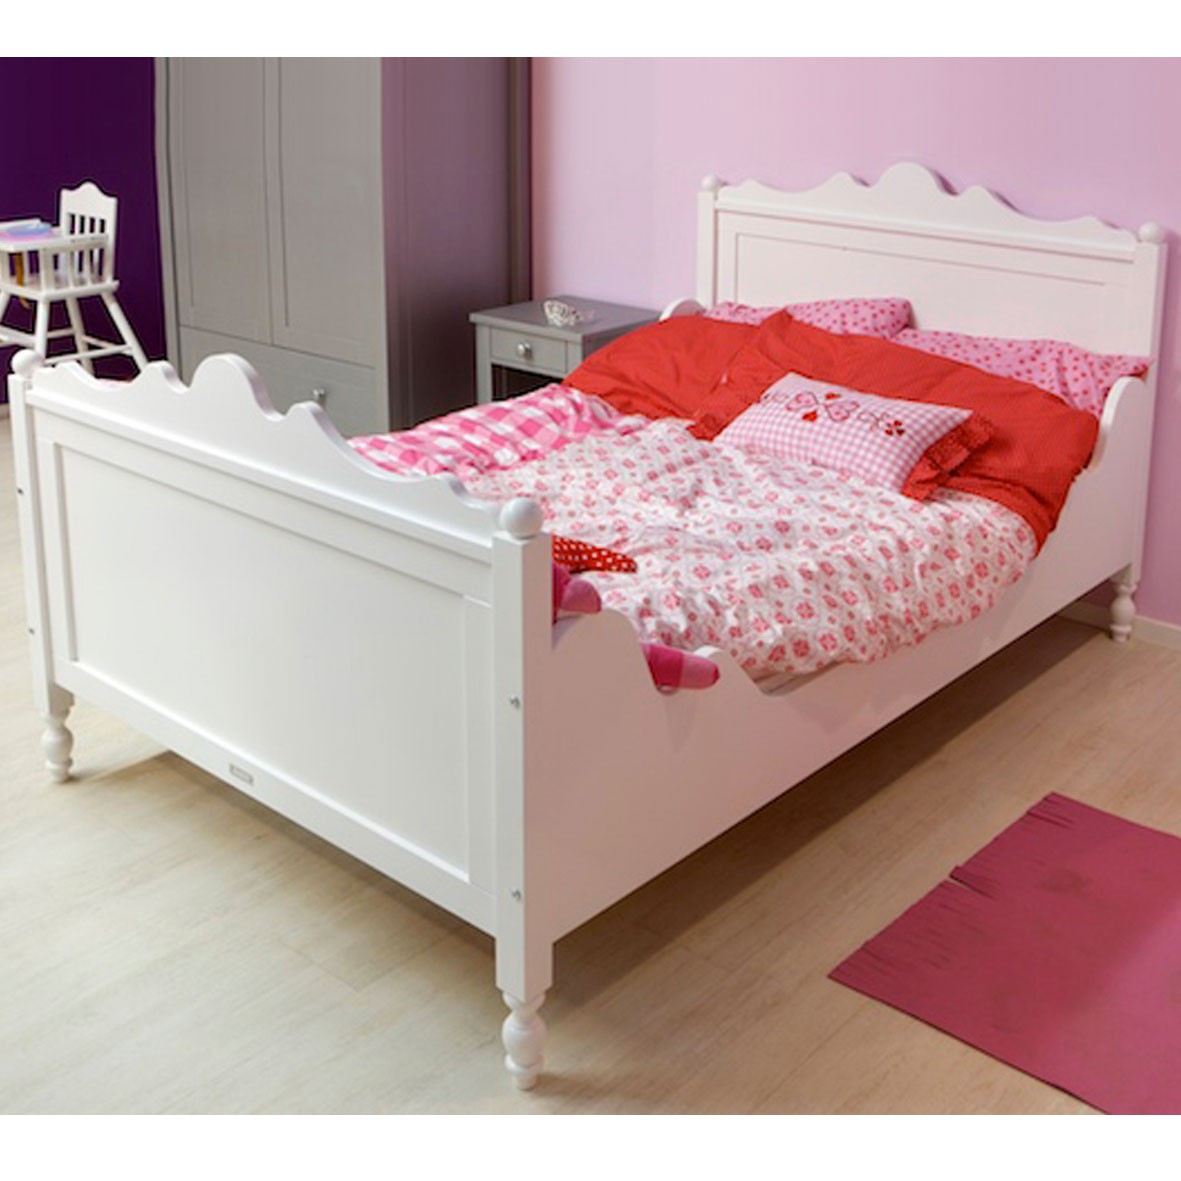 lit double belle 120 x 200 cm bopita mylittleroom. Black Bedroom Furniture Sets. Home Design Ideas